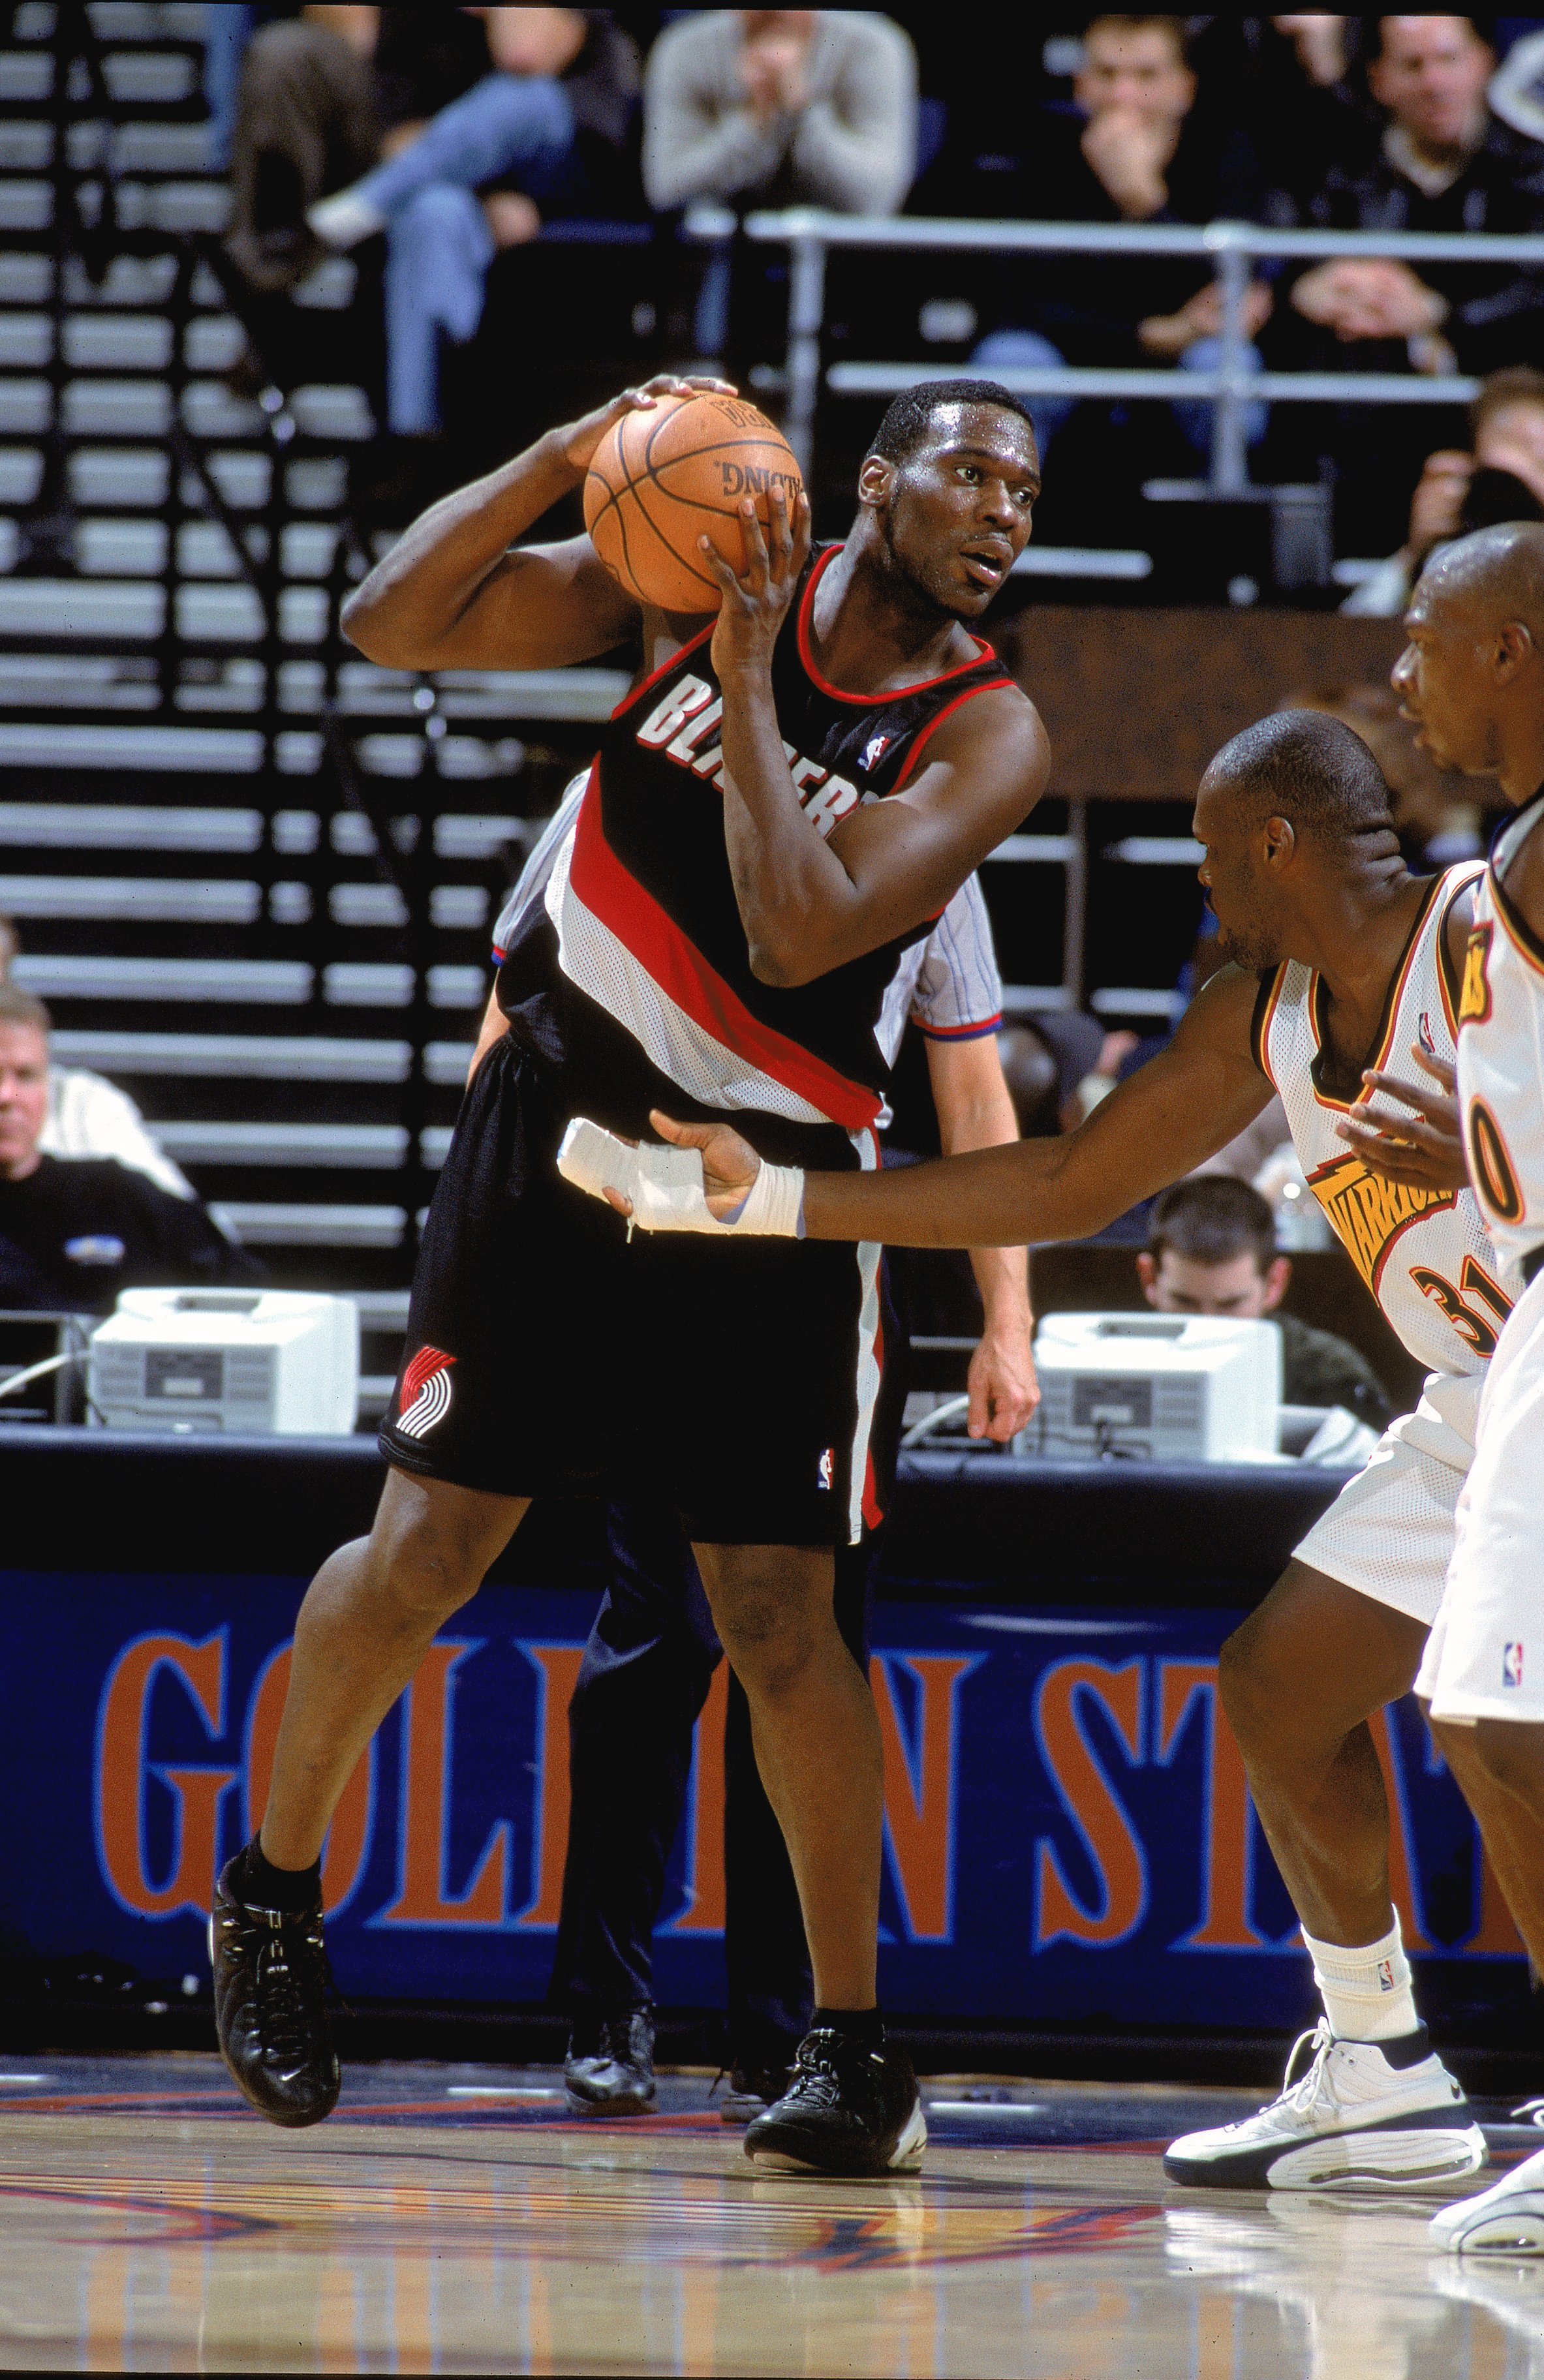 12 Dec 2000:  Shawn Kemp #40 of the Portland Trail Blazers looks to move the ball during the game against the Golden State Warriors at The Arena of Oakland in California. The Trail Blazers defeated the Warriors 101-92. NOTE TO USER: It is expressly unders